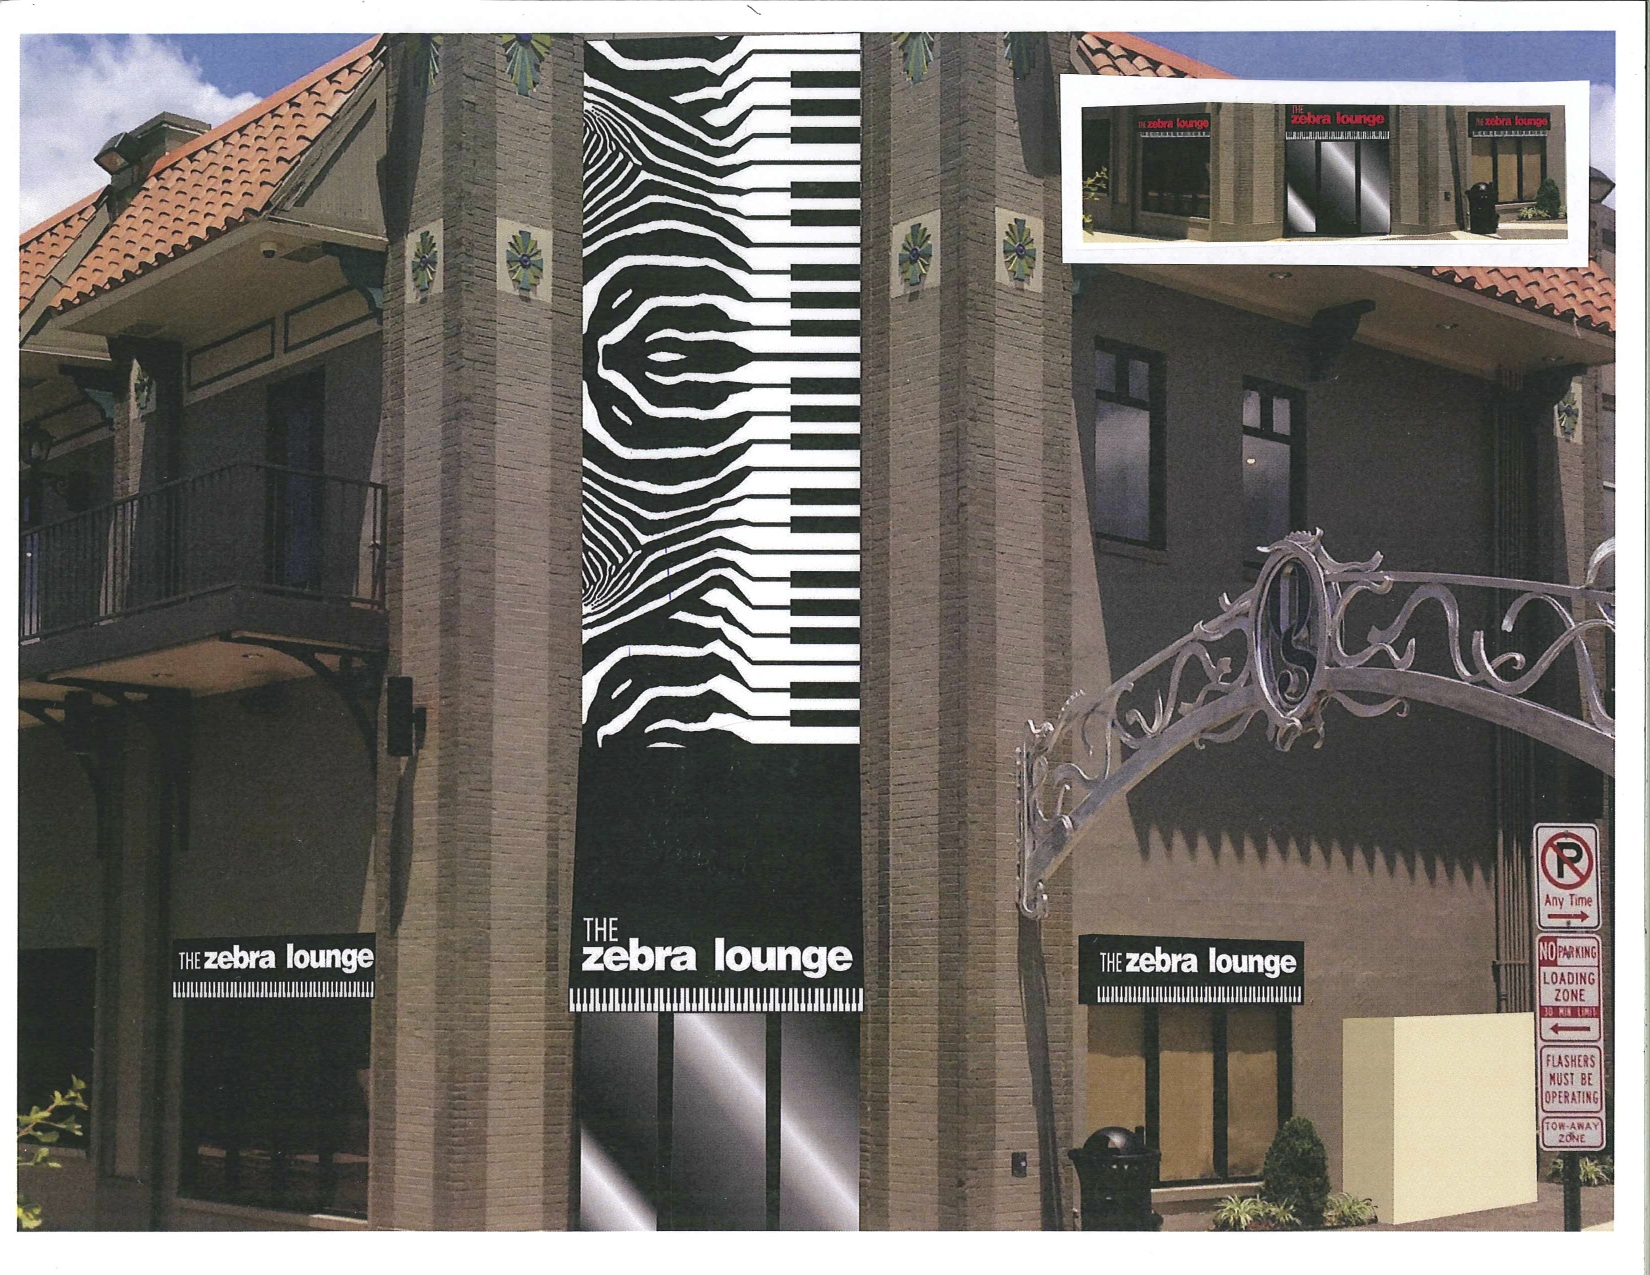 Zebra lounge piano bar in Memphis